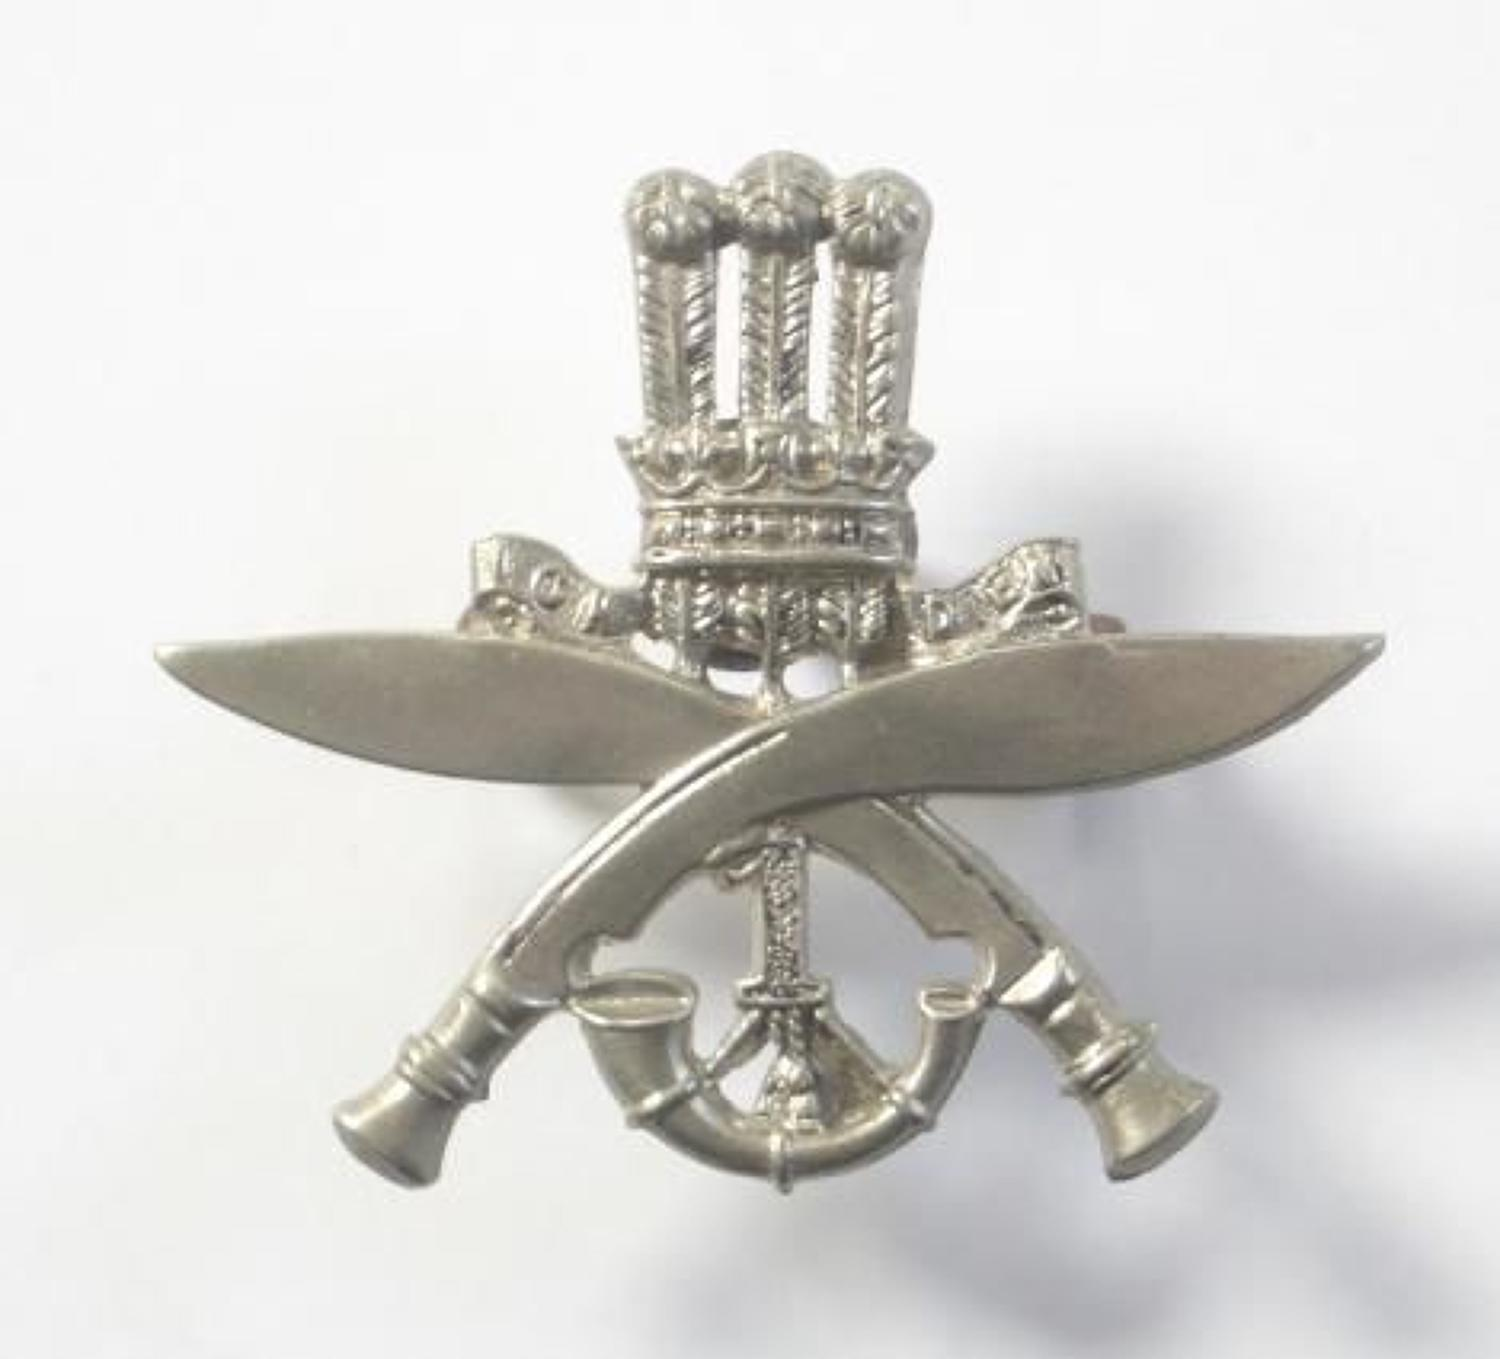 1st Gurkha Rifles white metal cap badge.